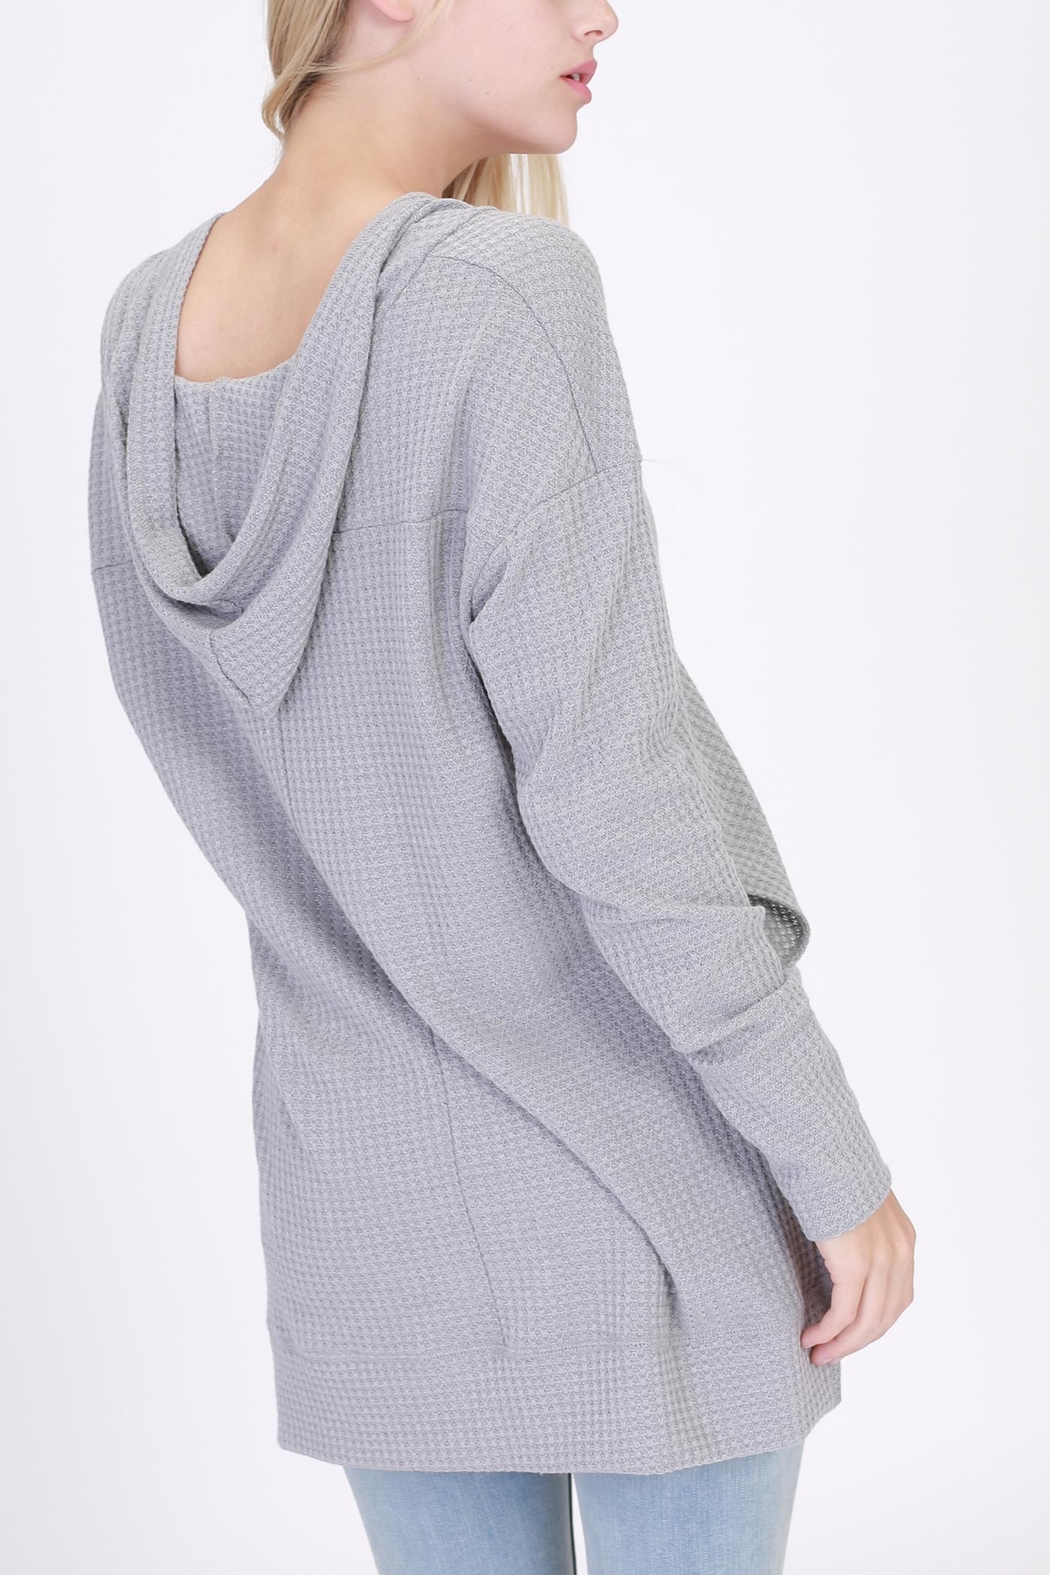 onetheland Hooded Long Sleeve Top - Front Full Image